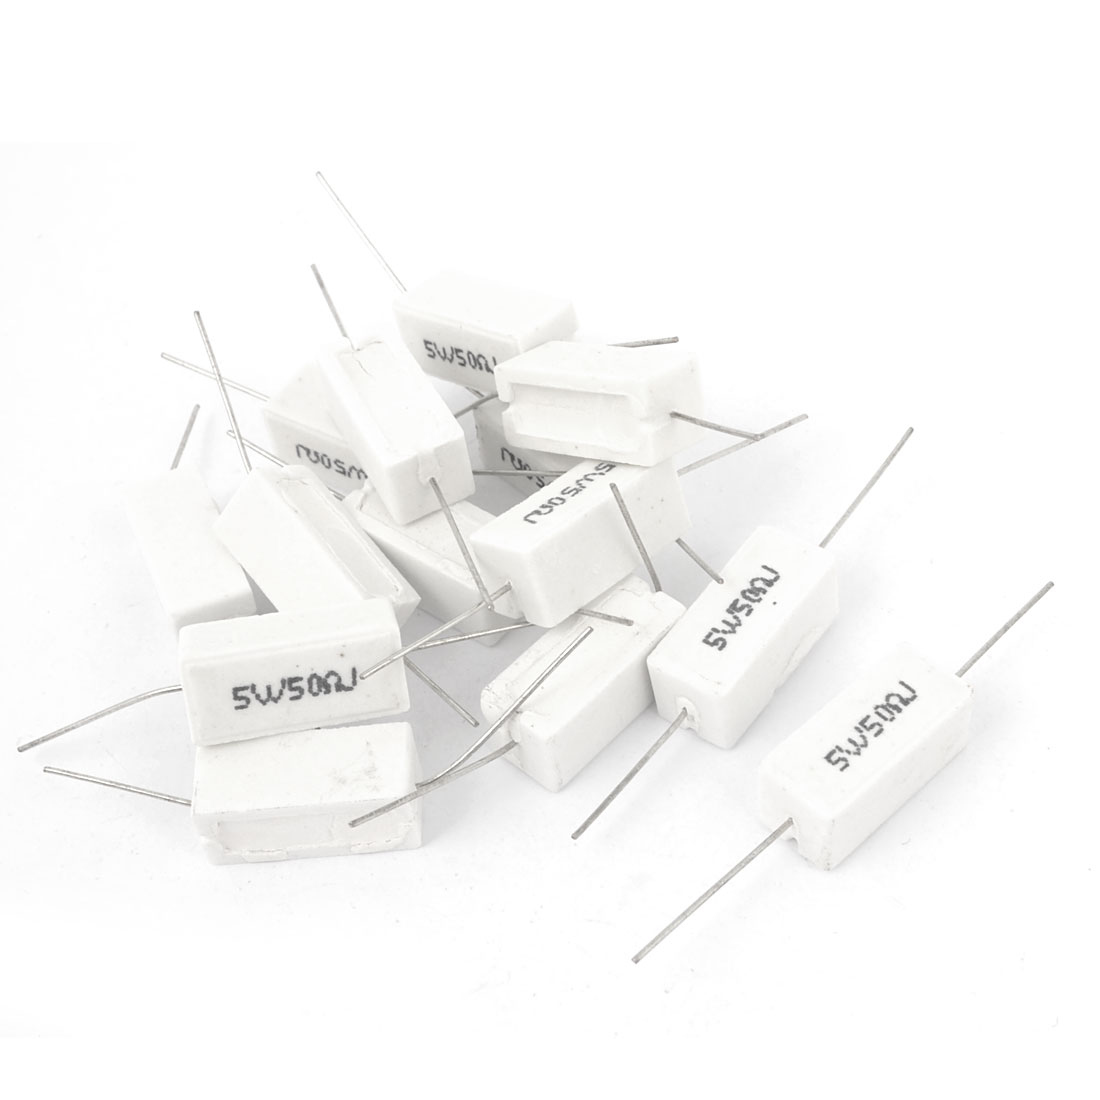 5W 50 Ohm Axial Lead Watt Tolerance 5% White Rectangle Wire Lead Ceramic Cement Power Resistor 15 Pcs